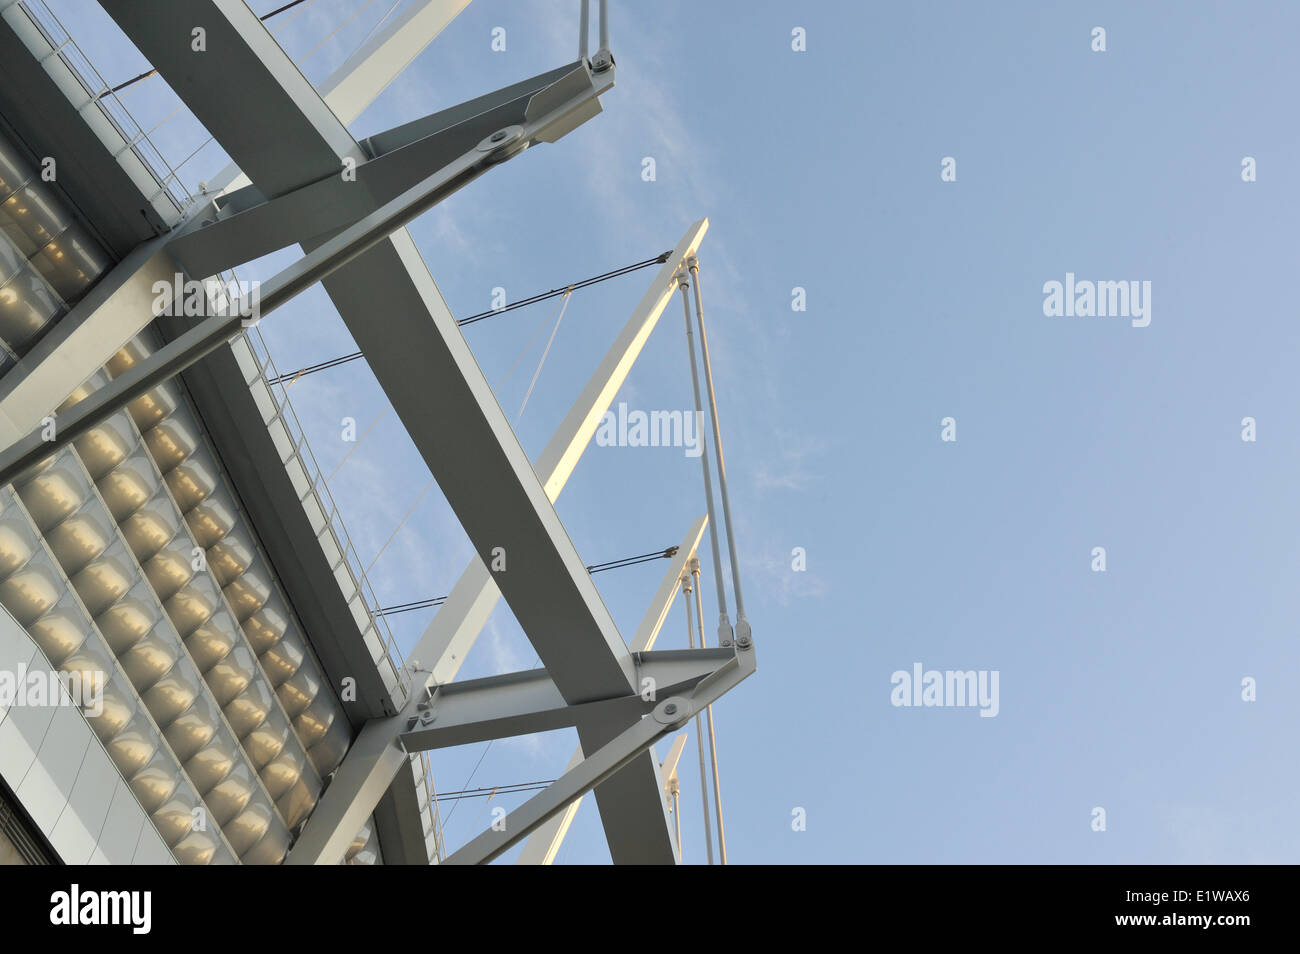 structure of new retractable roof, BC Place Stadium, Vancouver, British Columbia, Canada - Stock Image